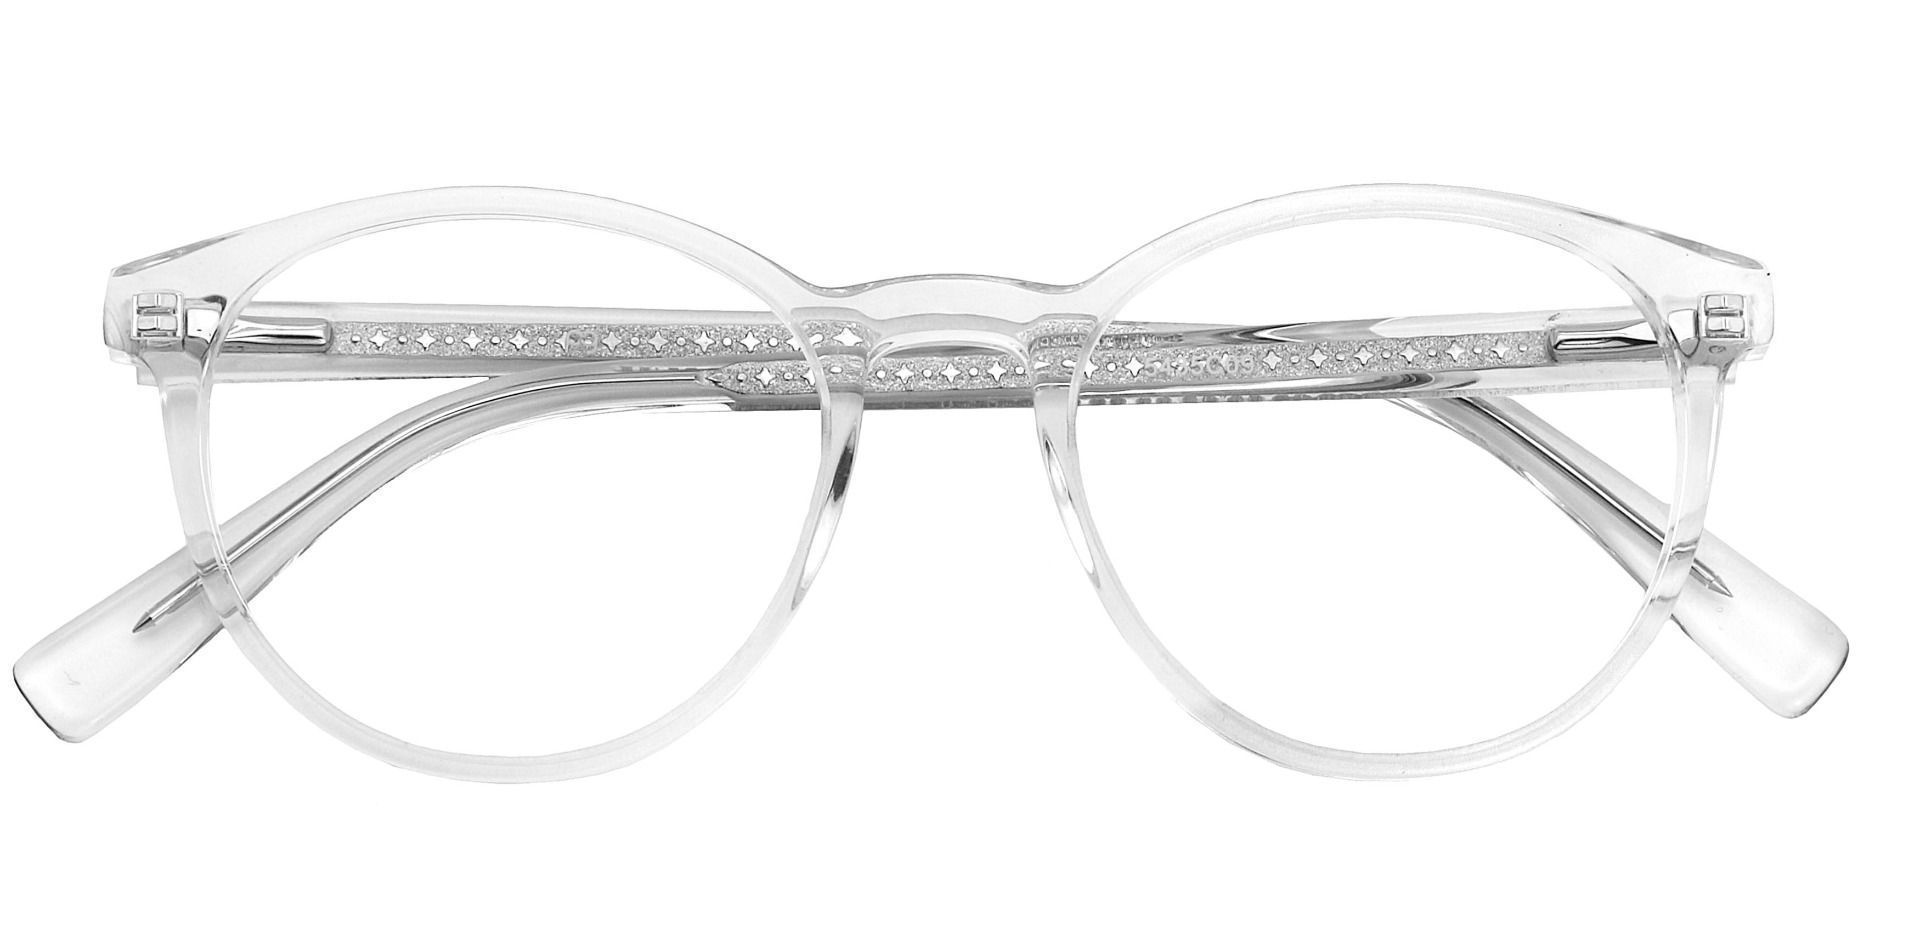 Stellar Oval Prescription Glasses - Clear